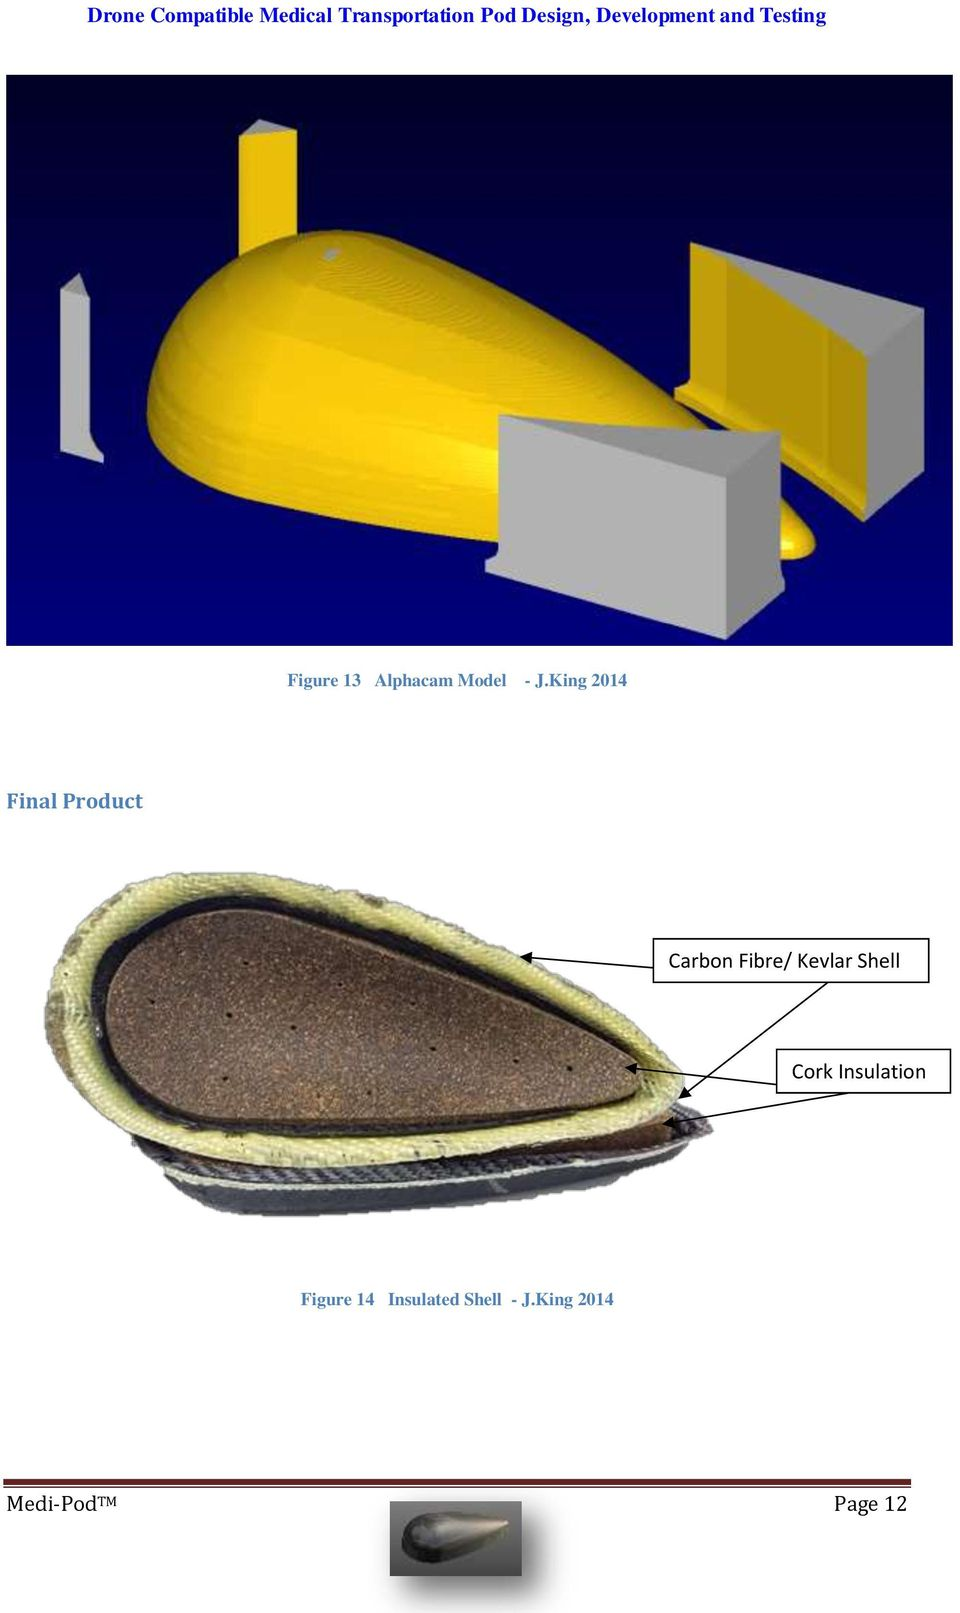 Kevlar Shell Cork Insulation Figure 14